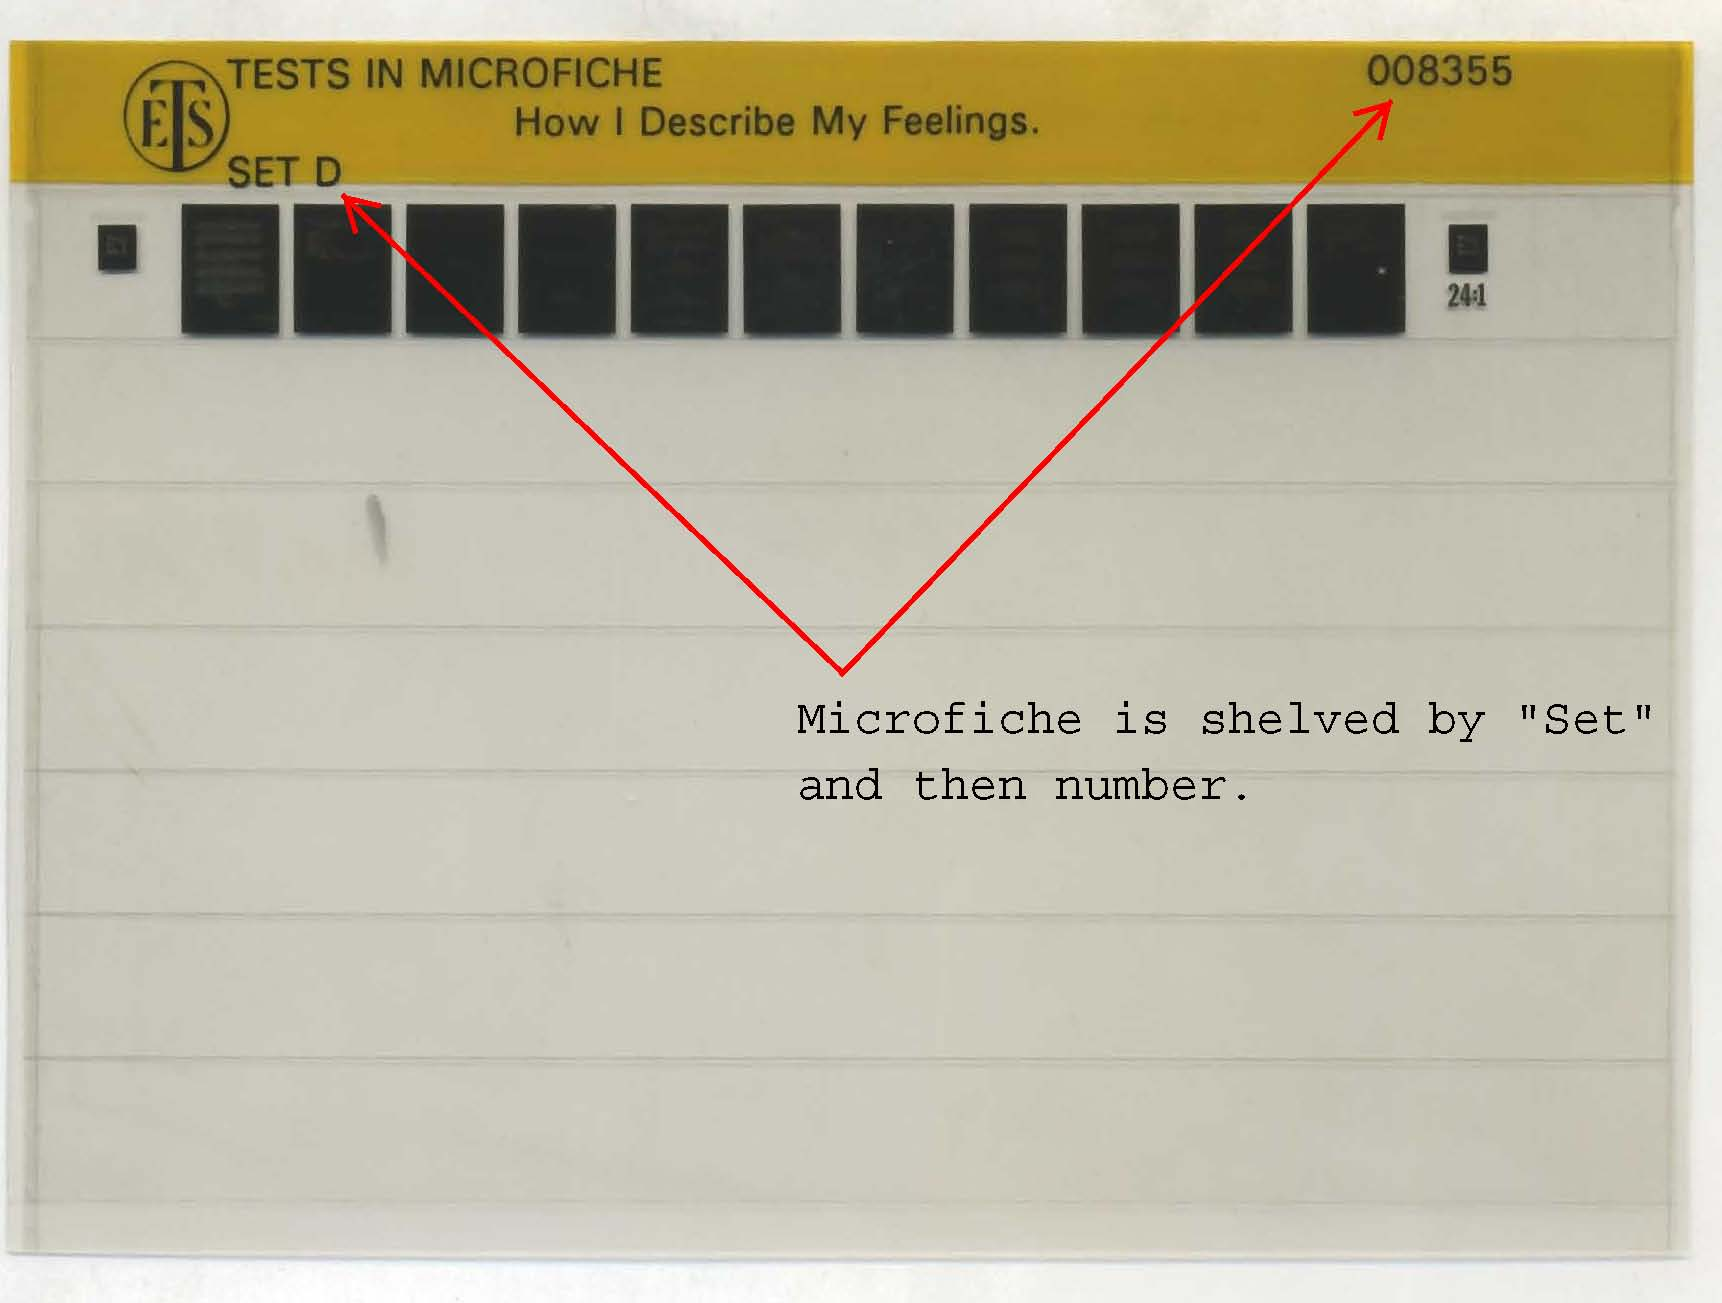 Photograph of microfiche showing location of Acronyms letter and call number.